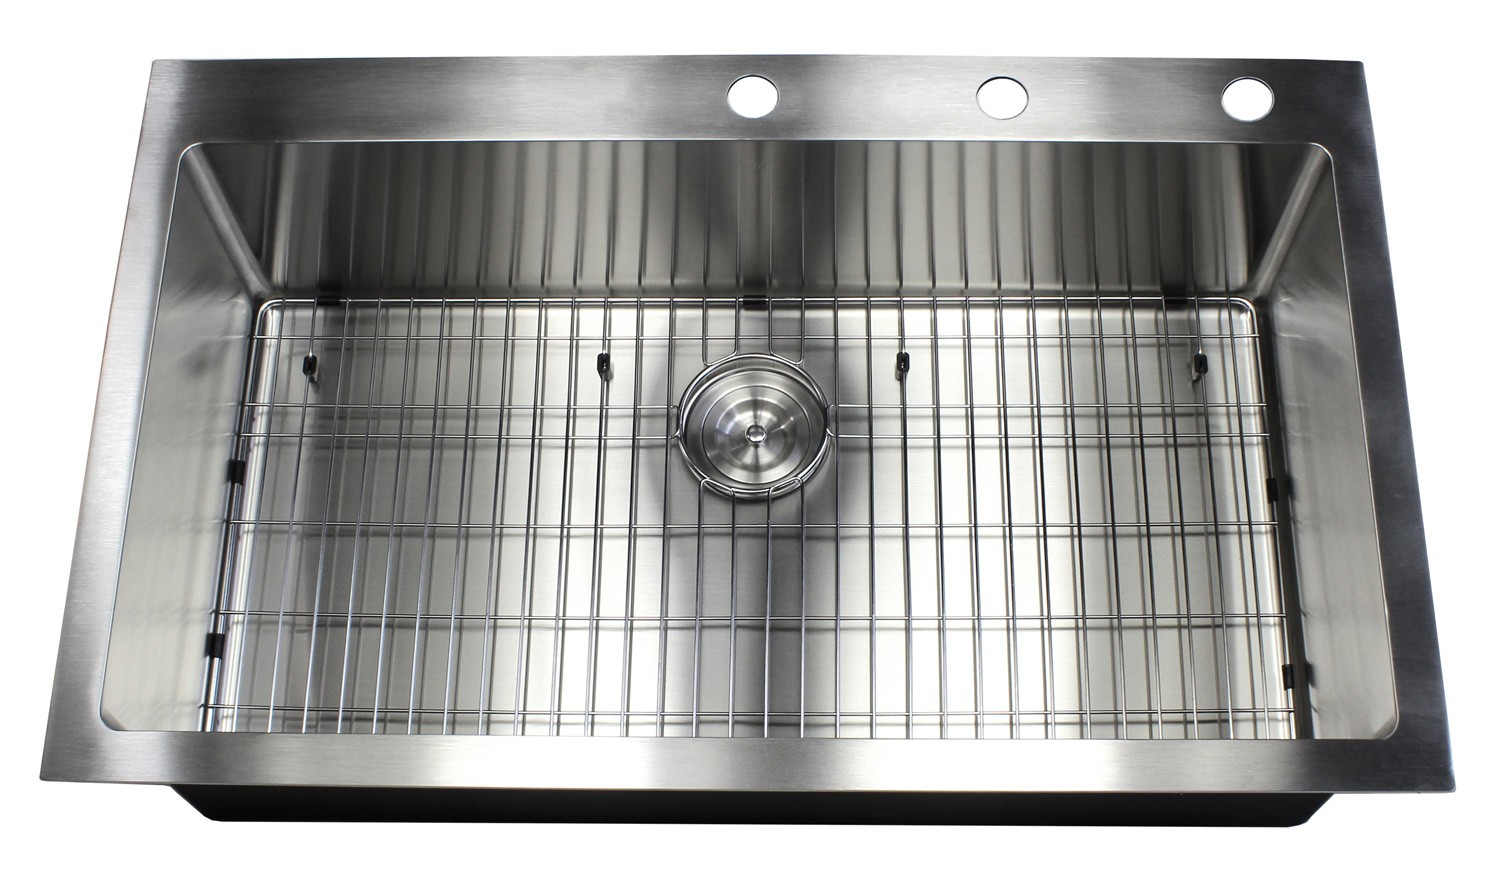 36 Inch Top-Mount / Drop-In Stainless Steel Single Bowl Kitchen Sink